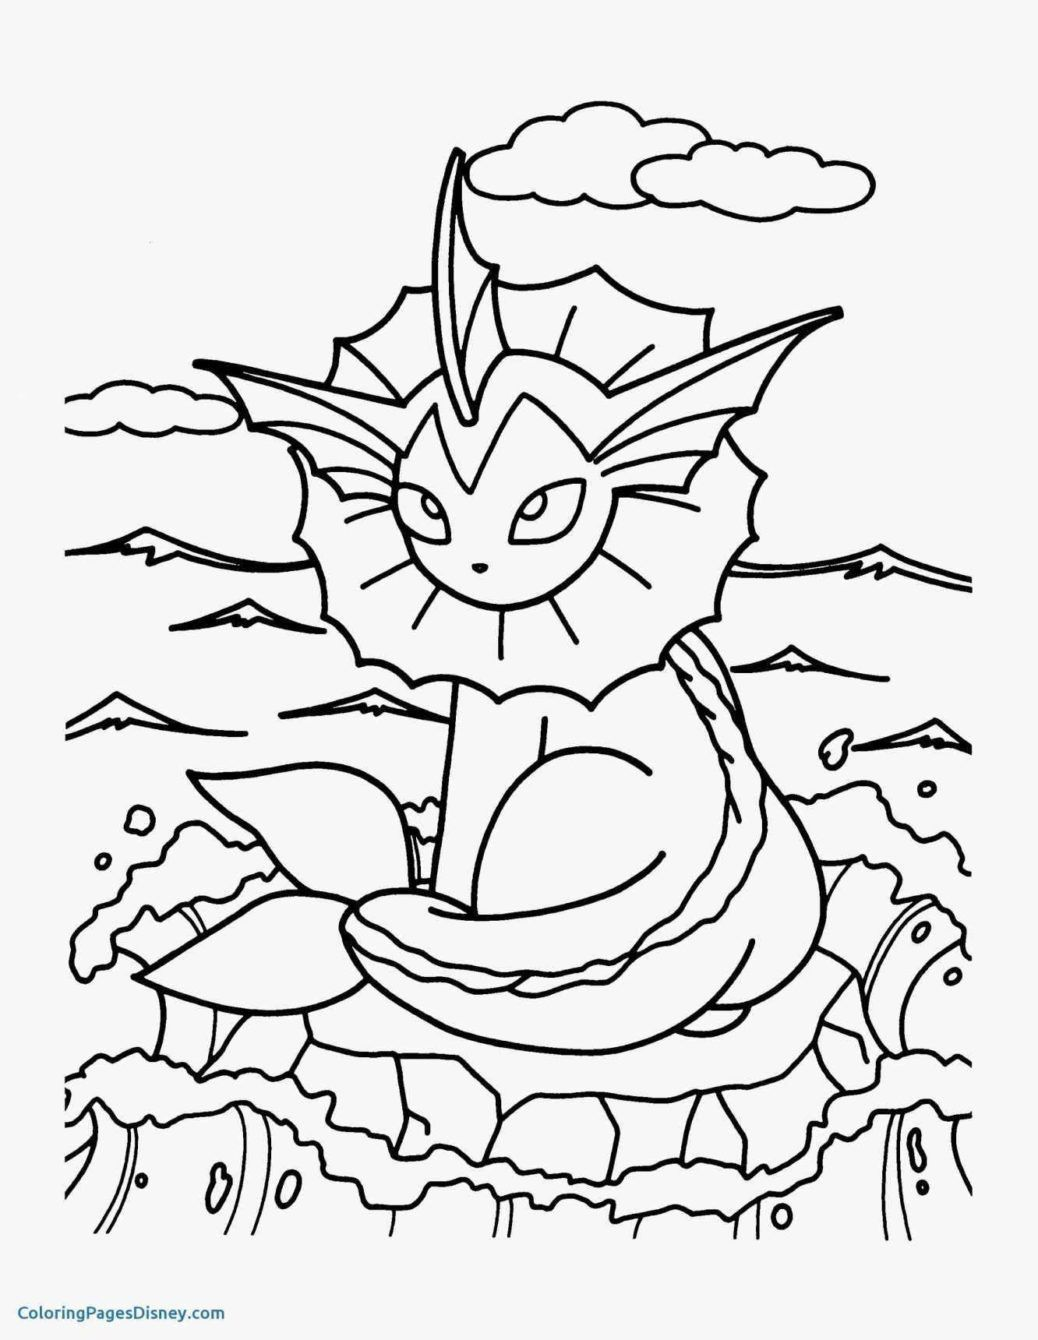 5 Worksheet Free Coloring Pictures Animals Unique Free